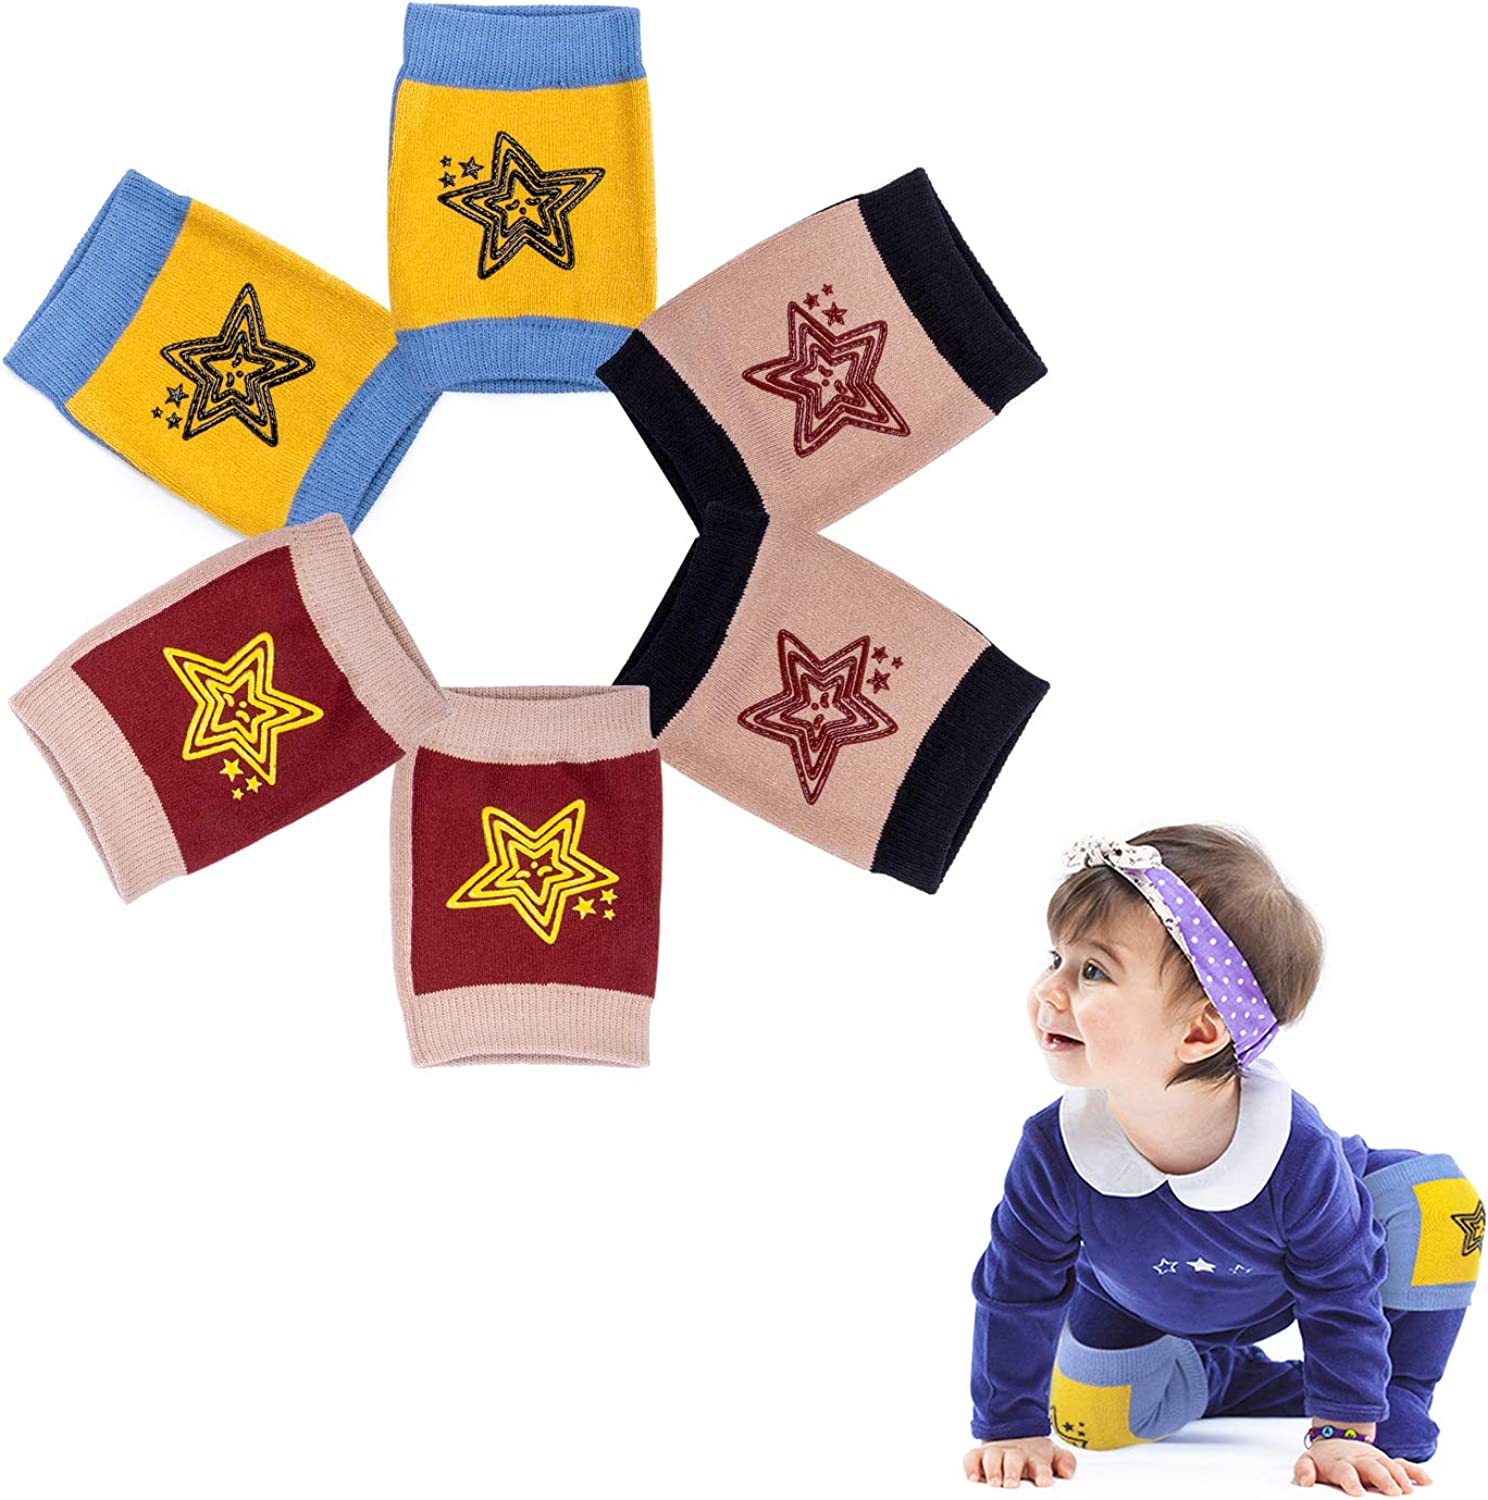 Baby Knee Pads for Crawling Babies Anti-Slip Protectors Infants Leg Warmers Toddlers Kneepads Unisex (3 Pairs)